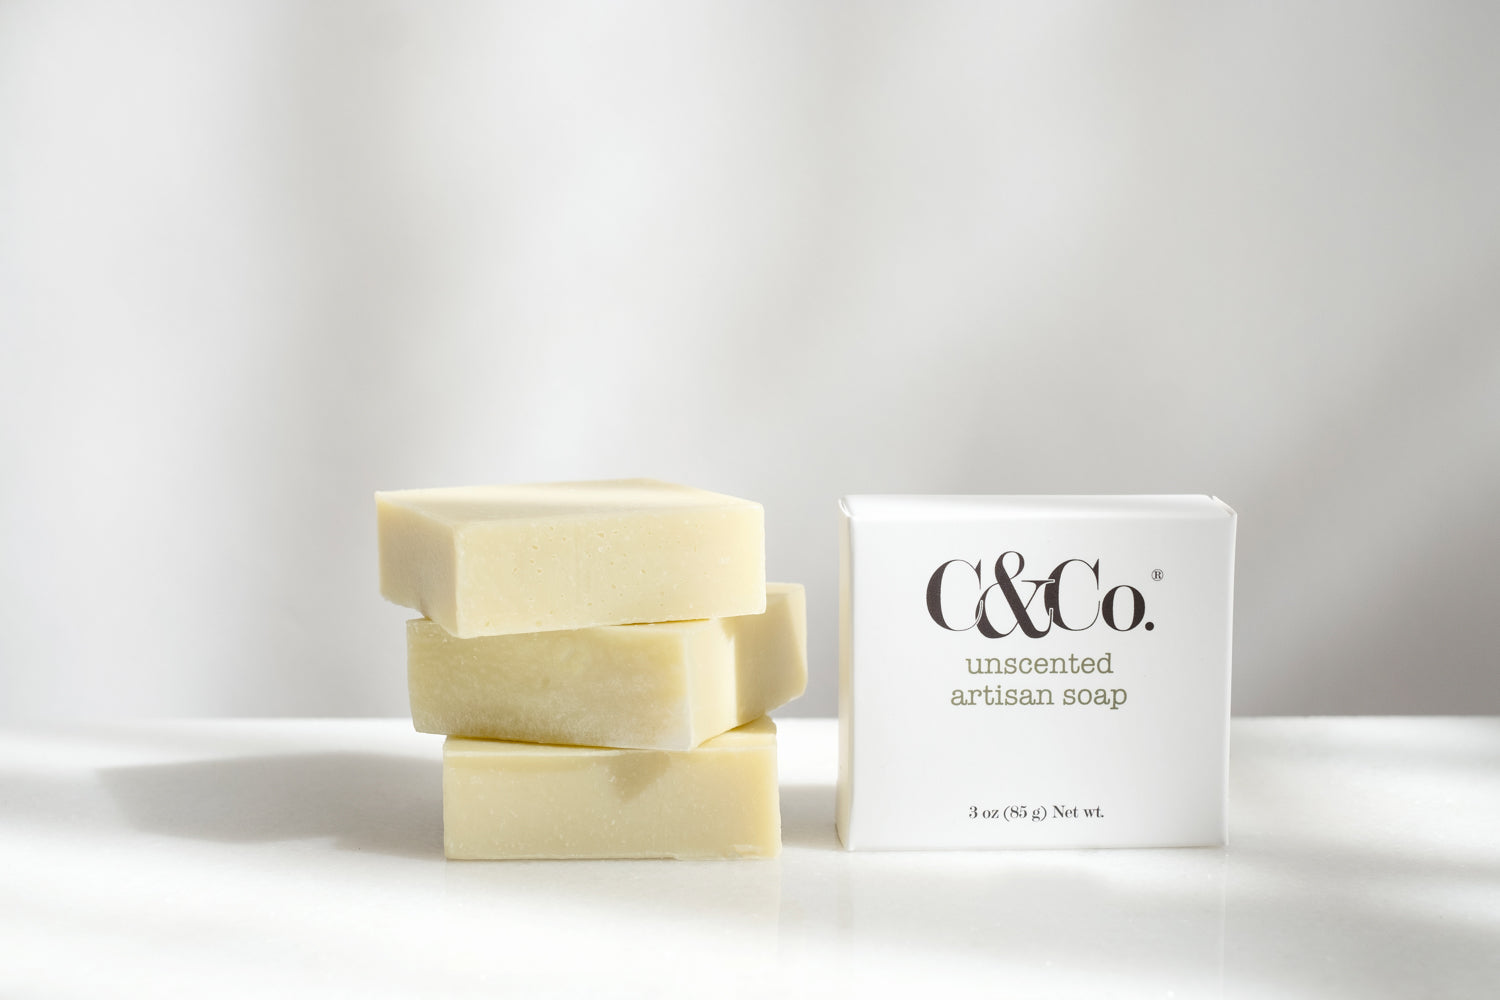 Unscented Artisan Soap - C & Co.®